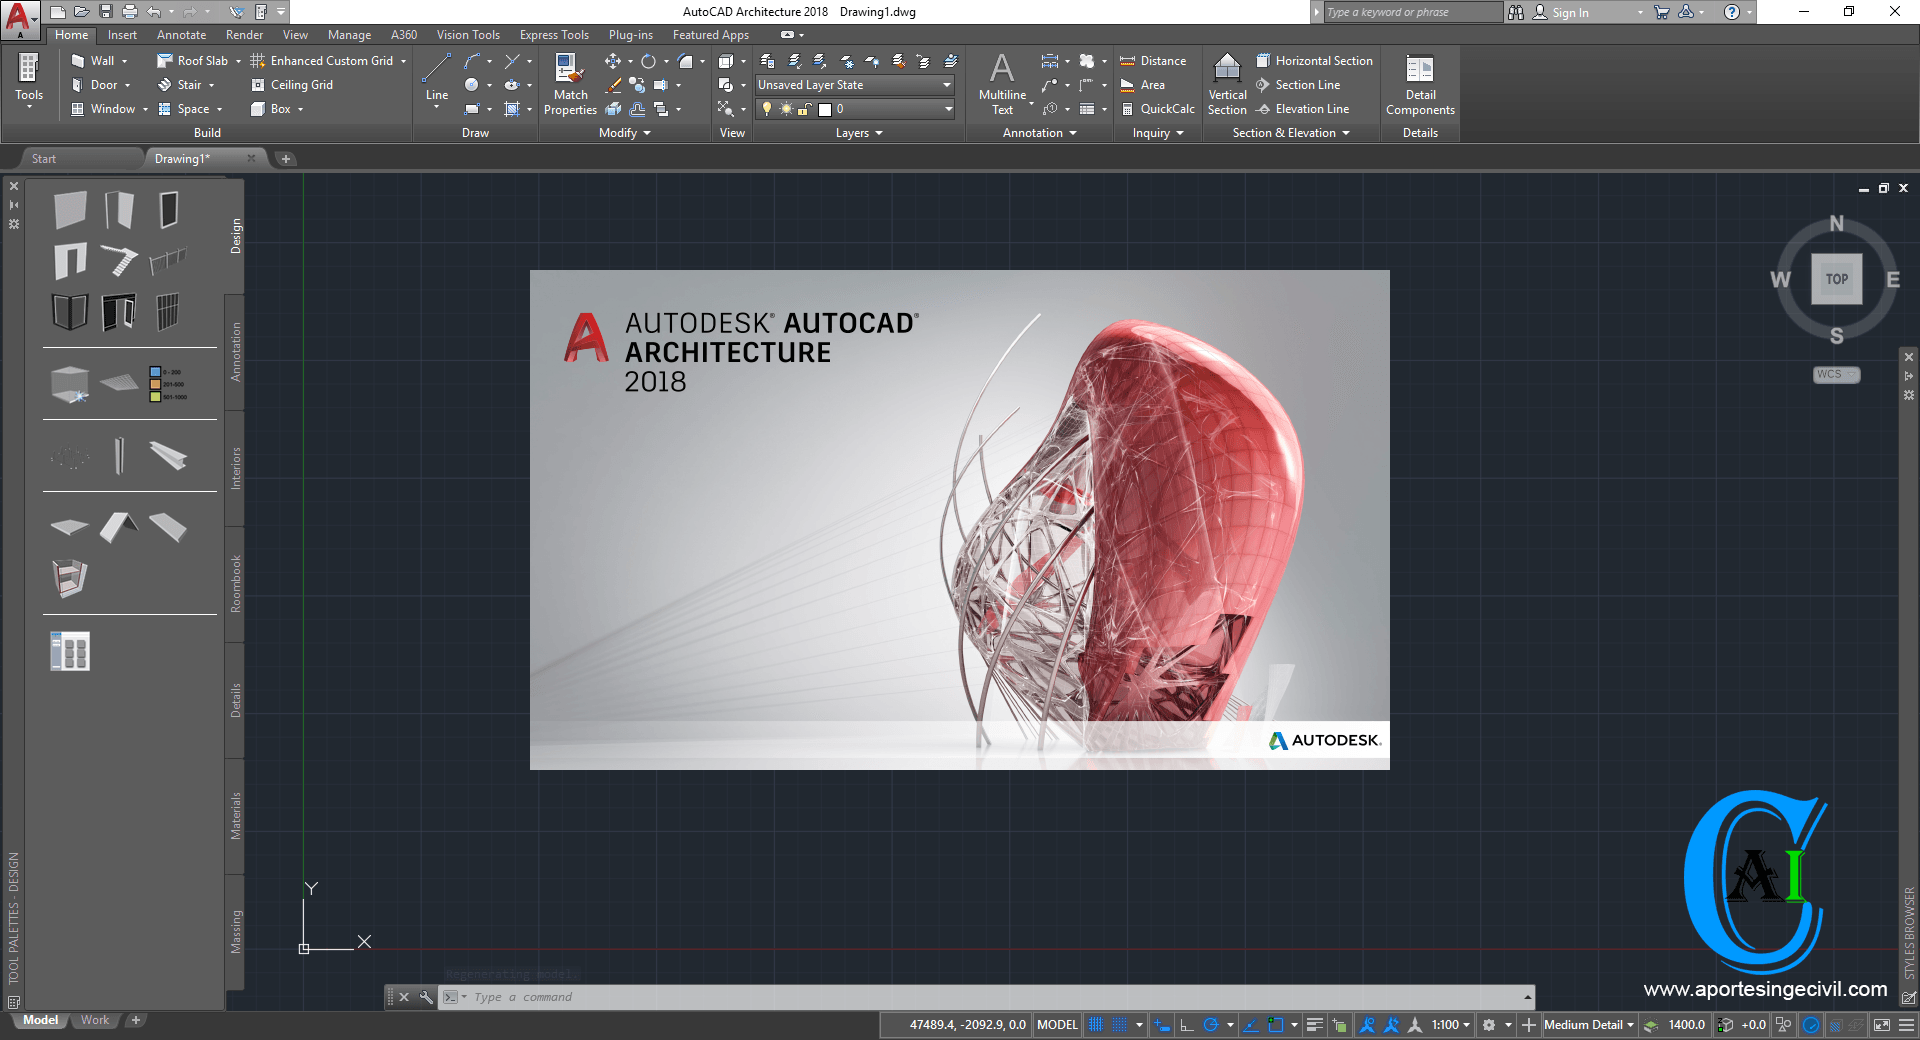 Manual Autocad Architecture 2014 Espaol